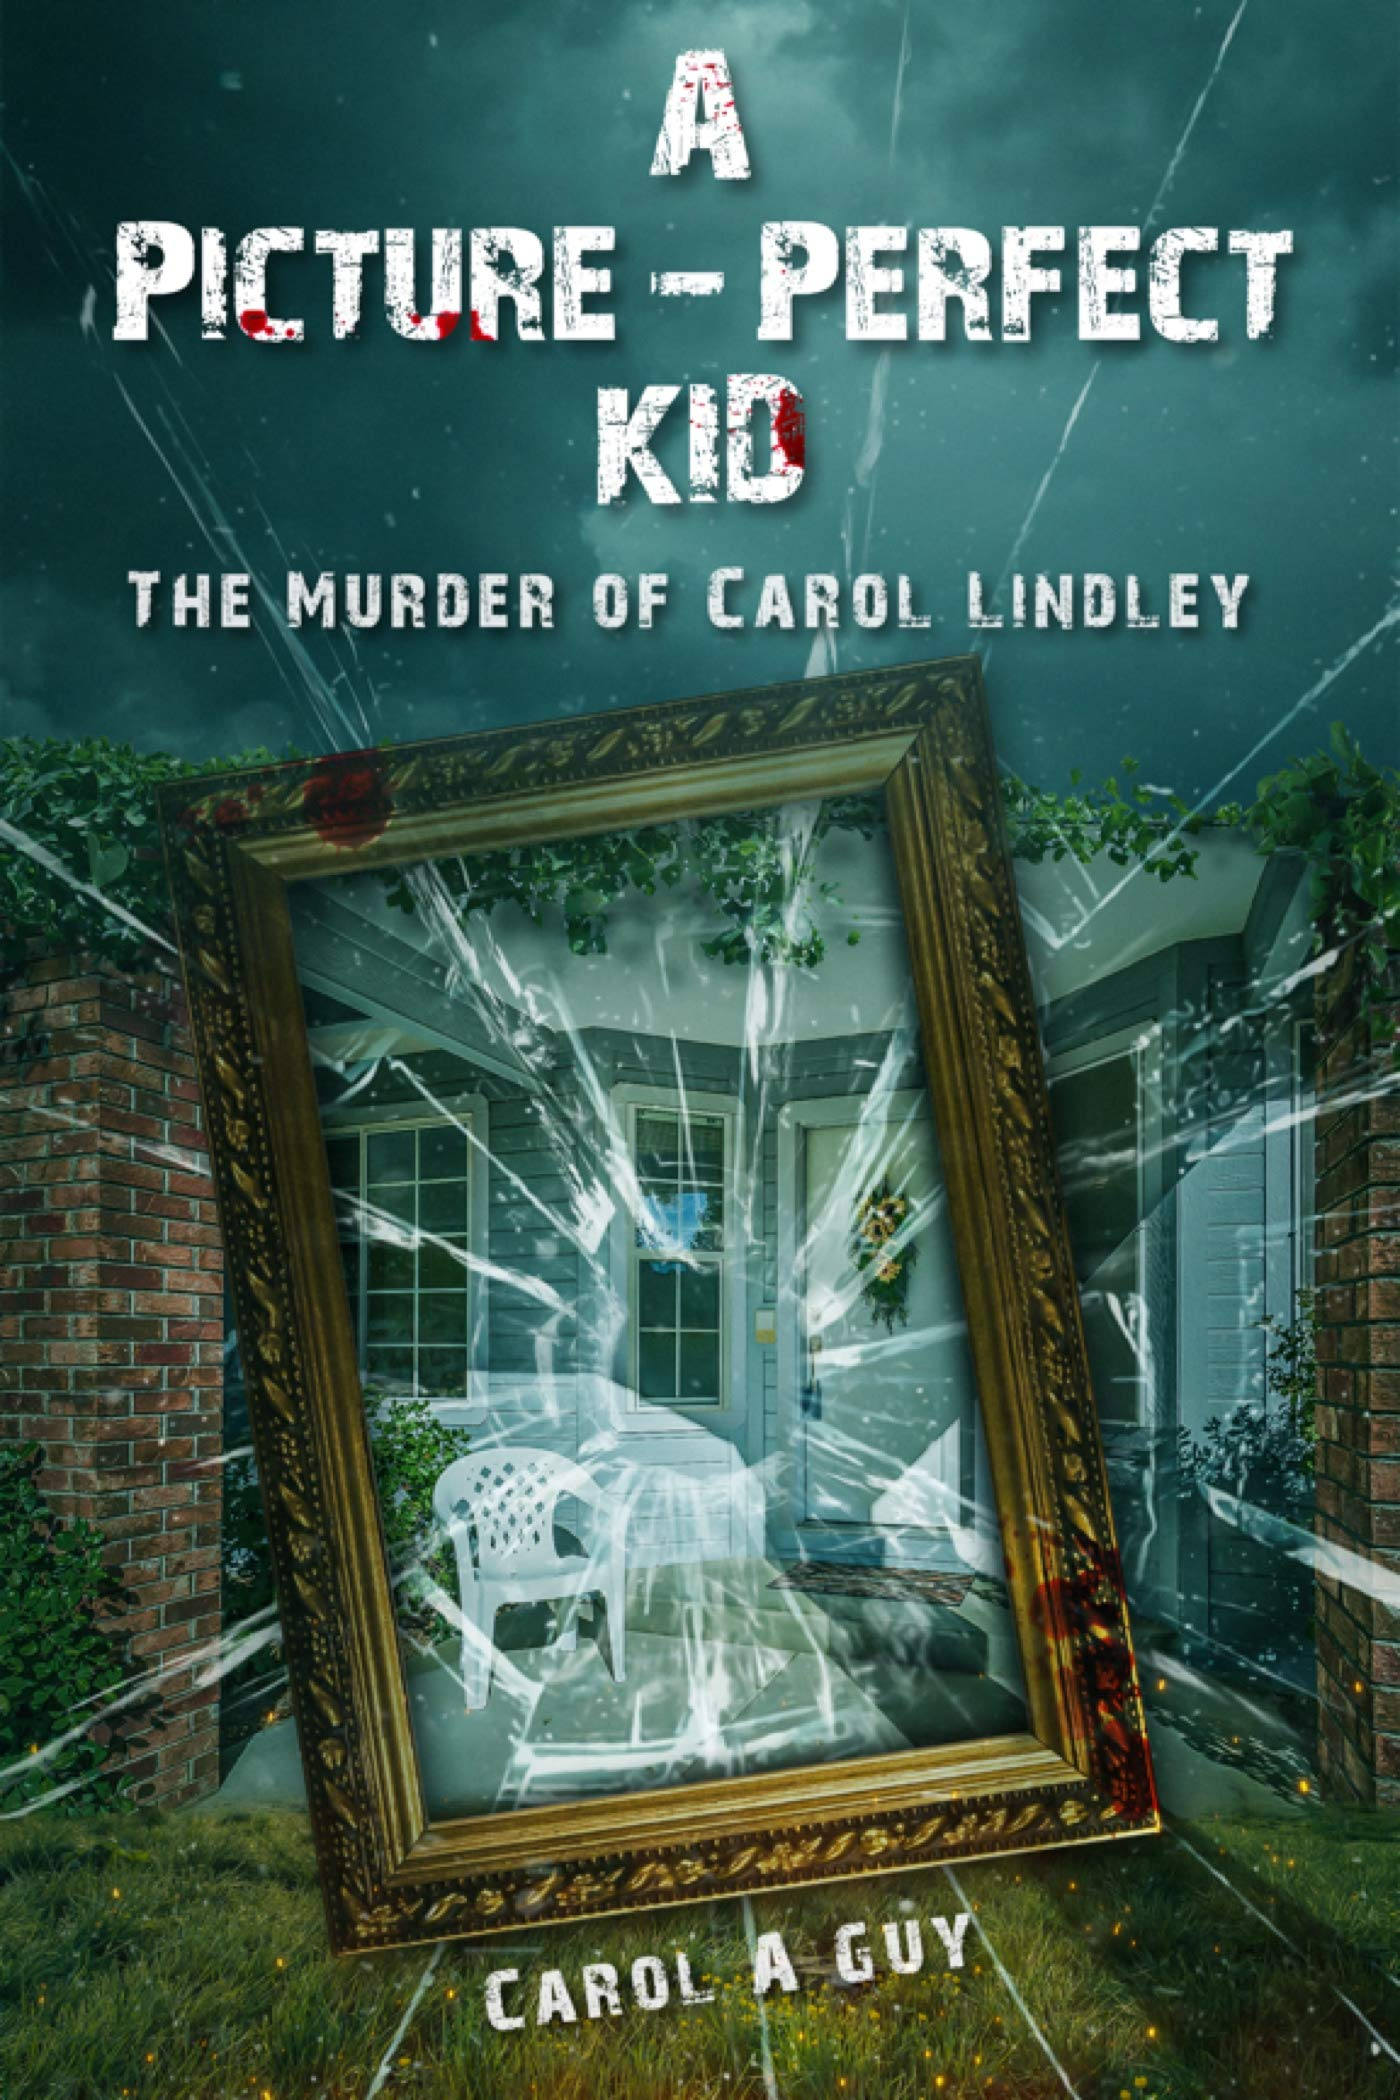 A Picture-Perfect Kid: The Murder of Carol Jean Lindley